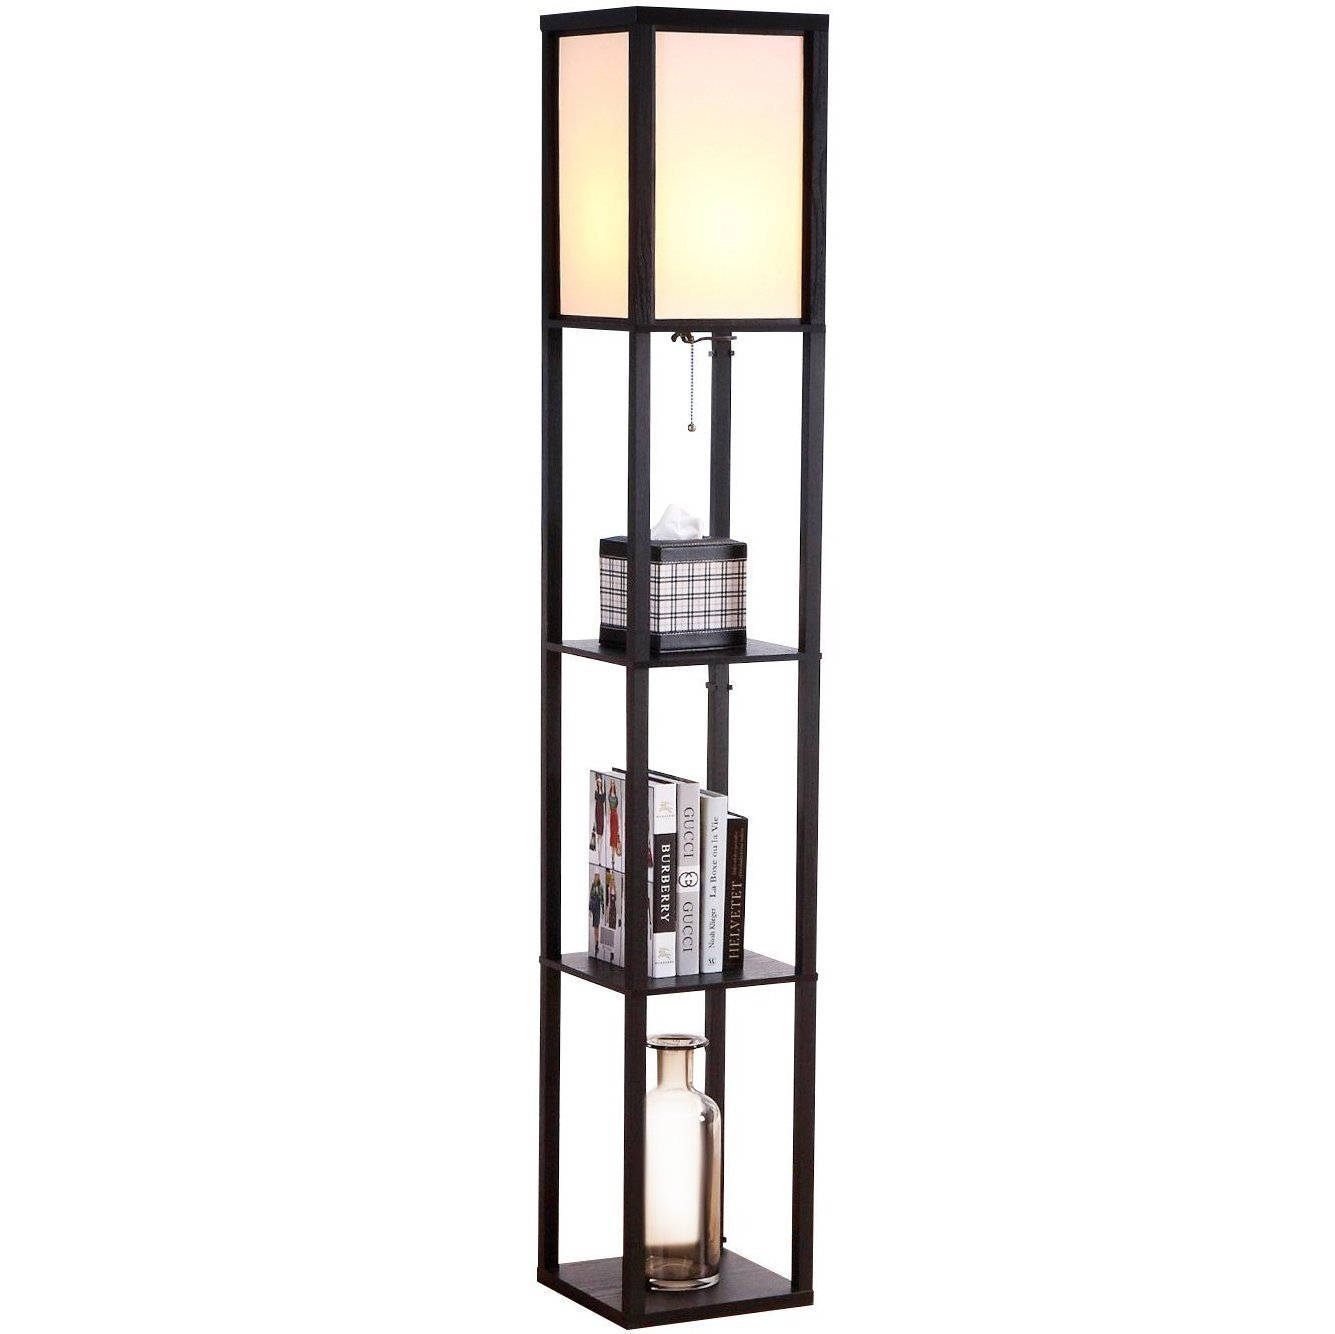 Brightech Maxwell - Alexa Compatible LED Shelf Floor Lamp - Modern Standing Light for Living Rooms & Bedrooms - Asian Wooden Frame with Open Box Display Shelves - Black